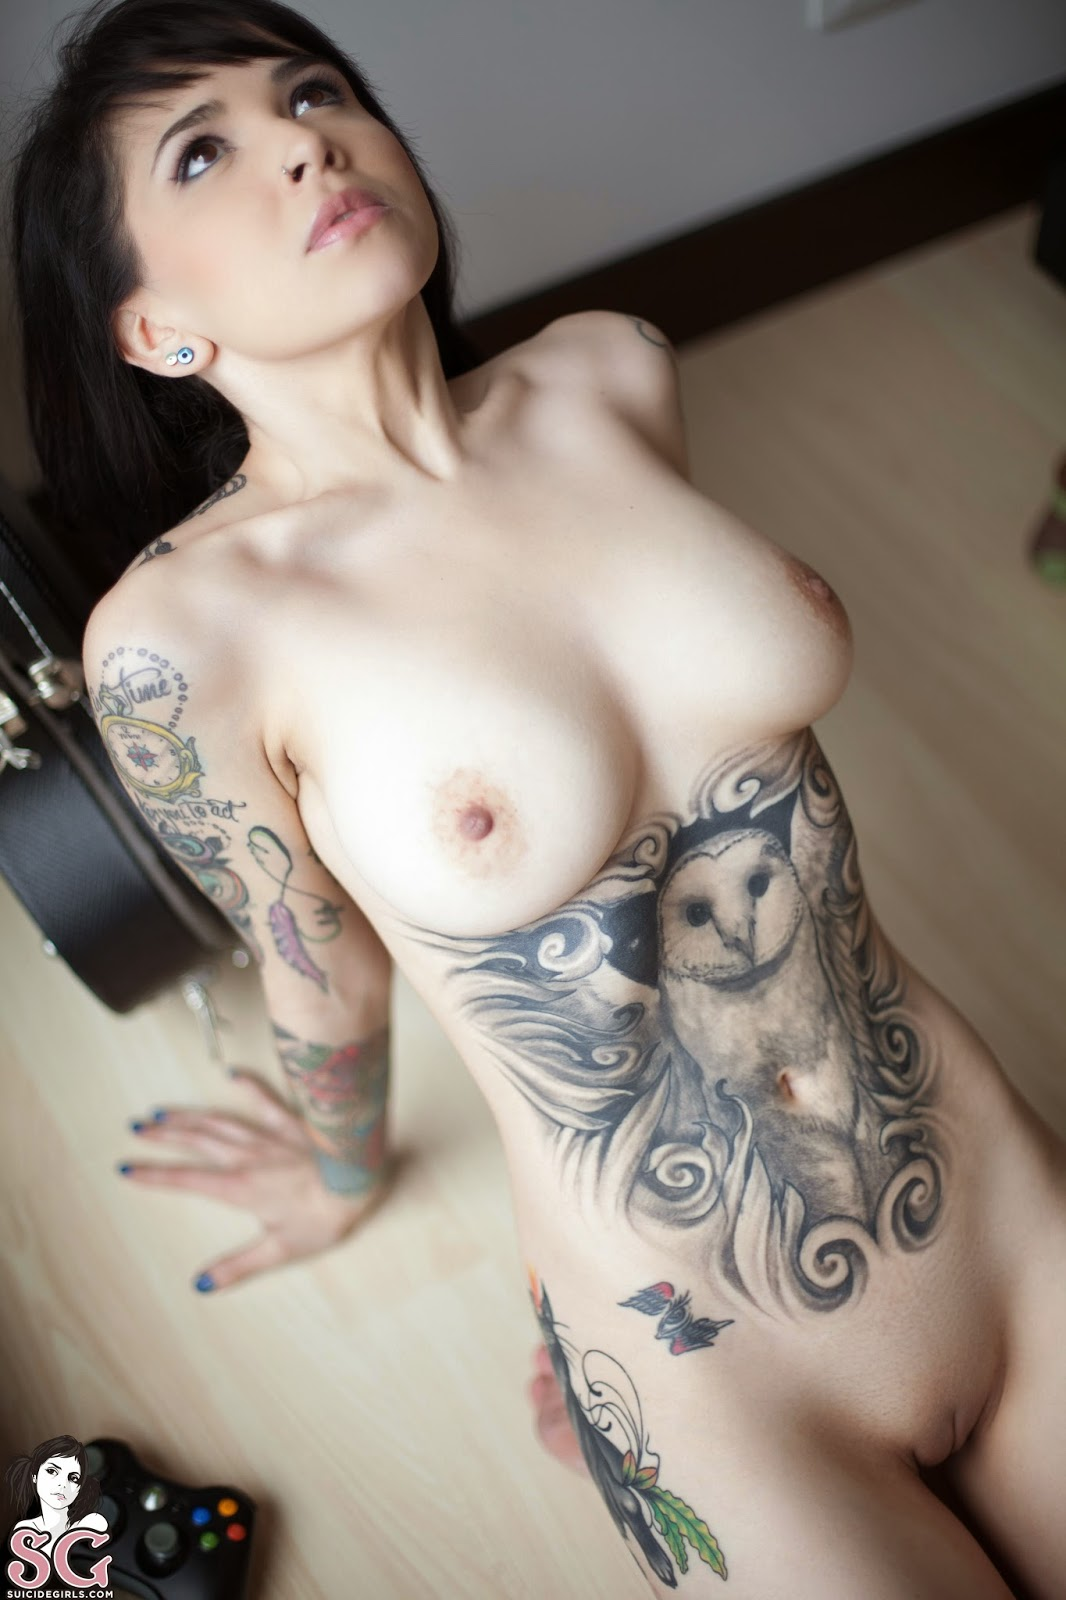 emo girls naked pussy tattoos